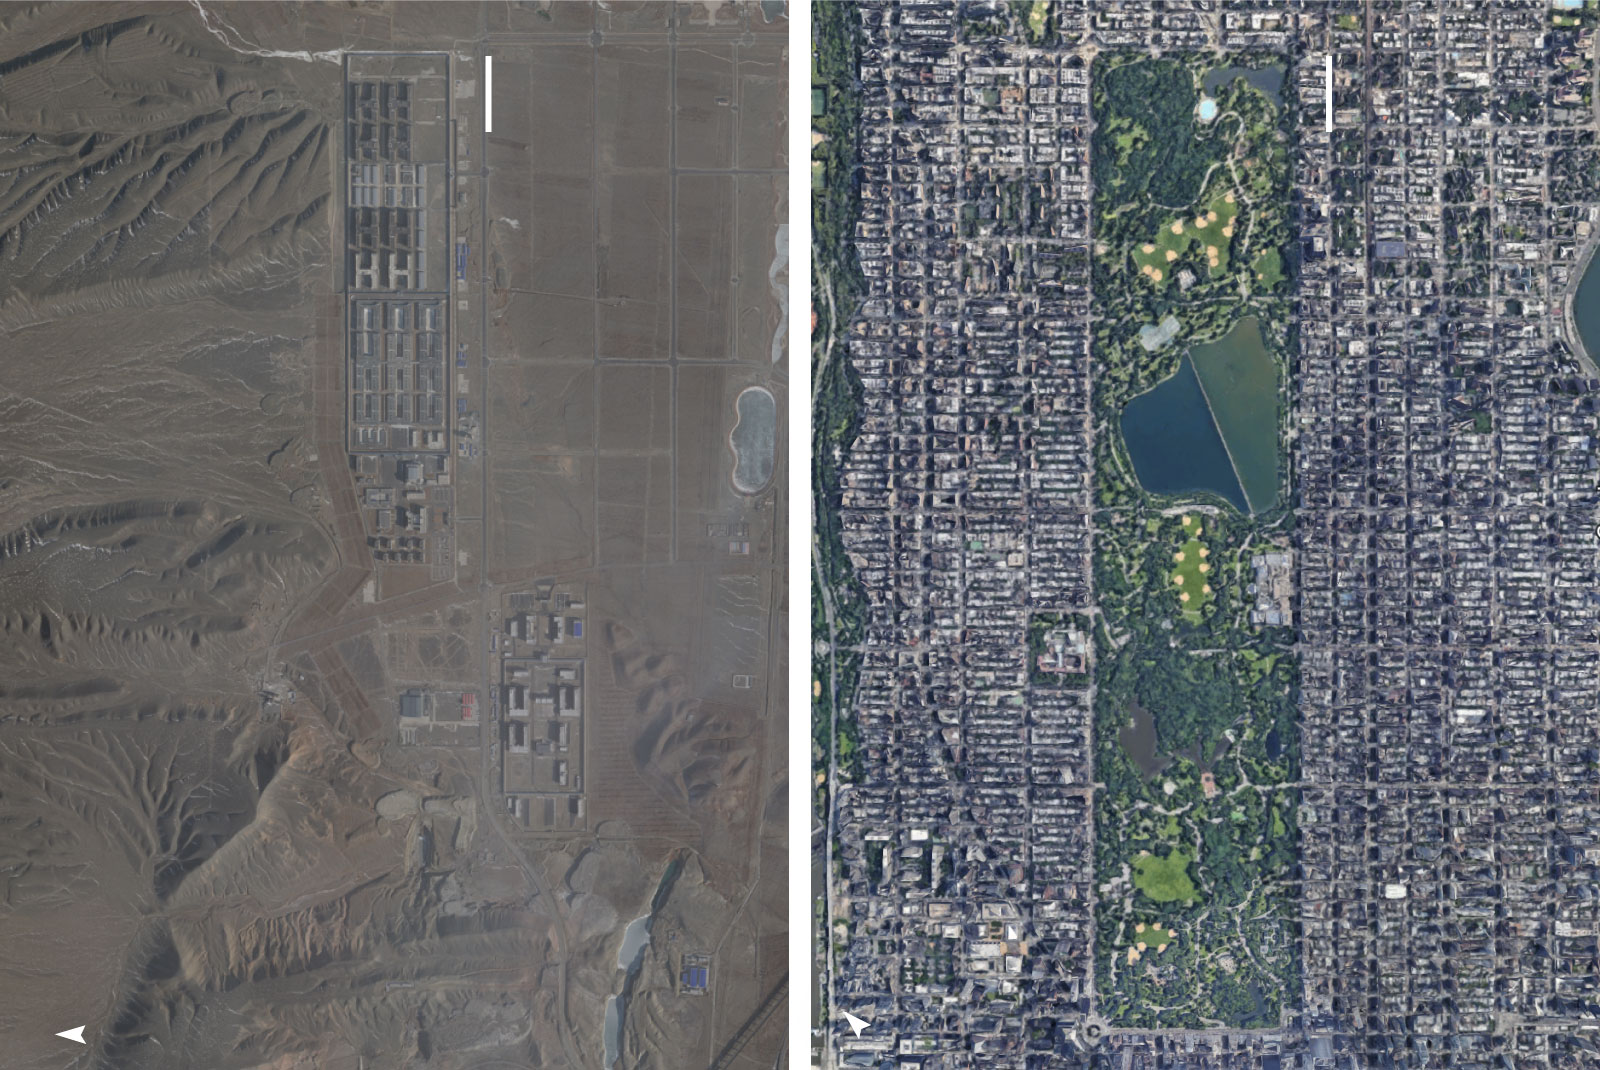 Satellite imagery comparing the size of Dabancheng to Central Park